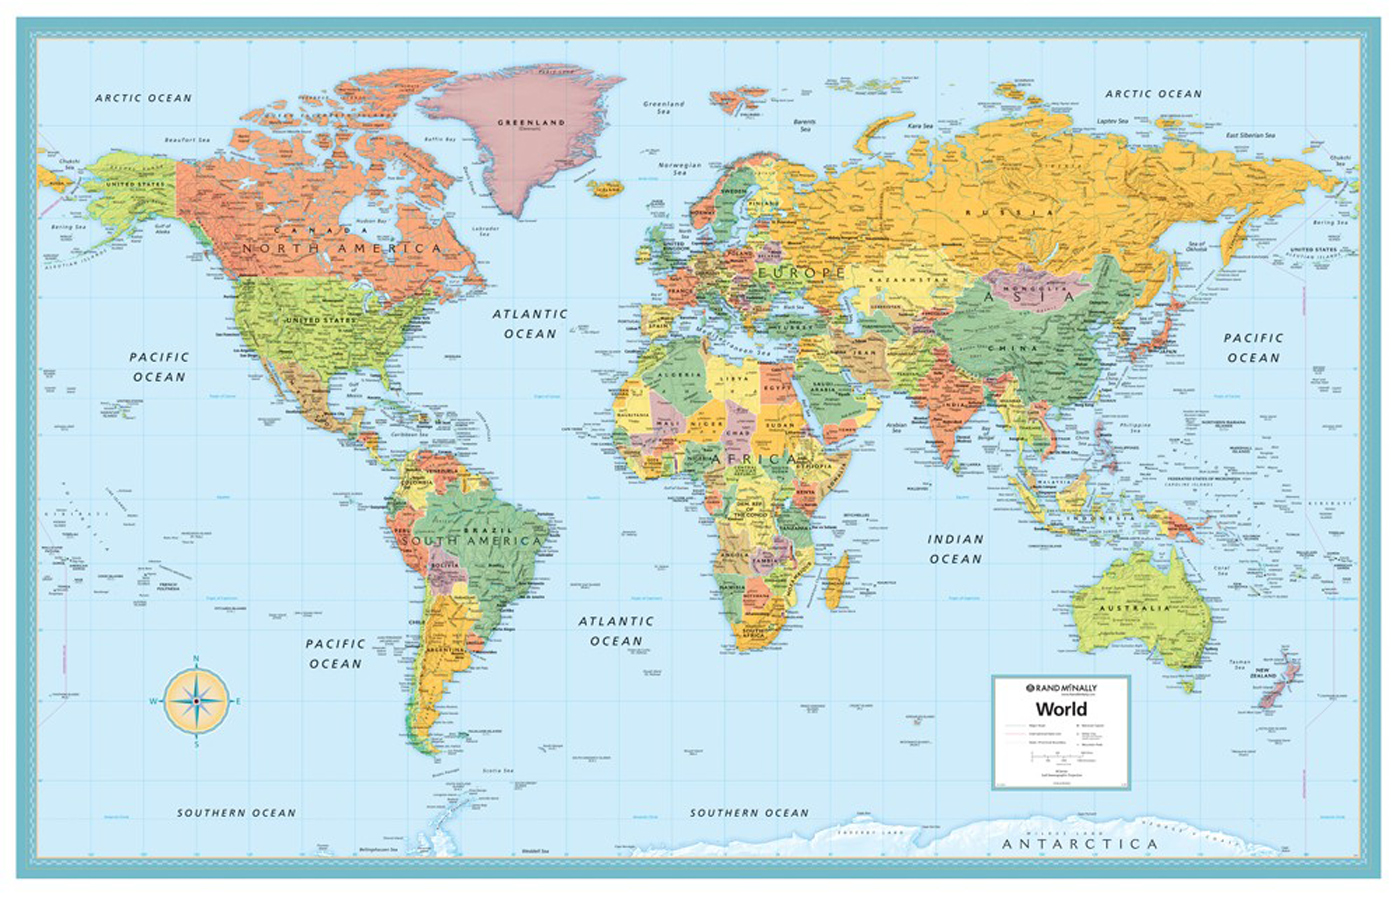 Rand mcnally deluxe signature world map wall poster rmc deluxe signature world map wall poster gumiabroncs Images